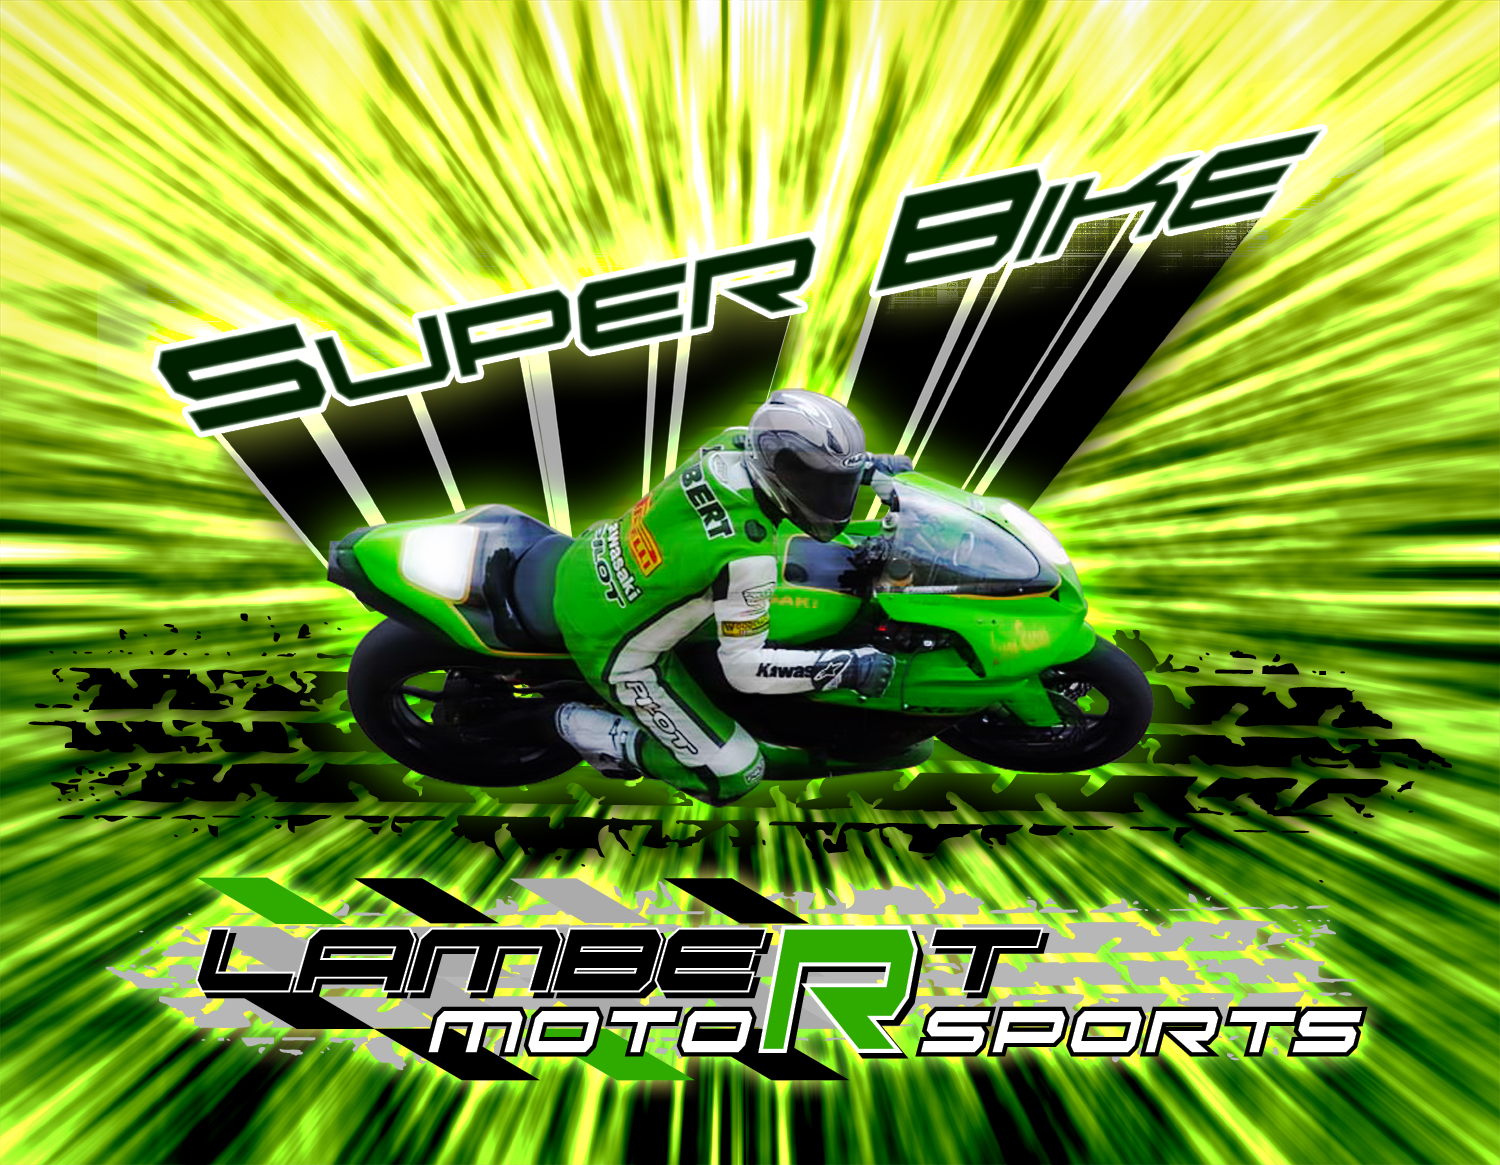 Super-Bike-Alt-3.jpg